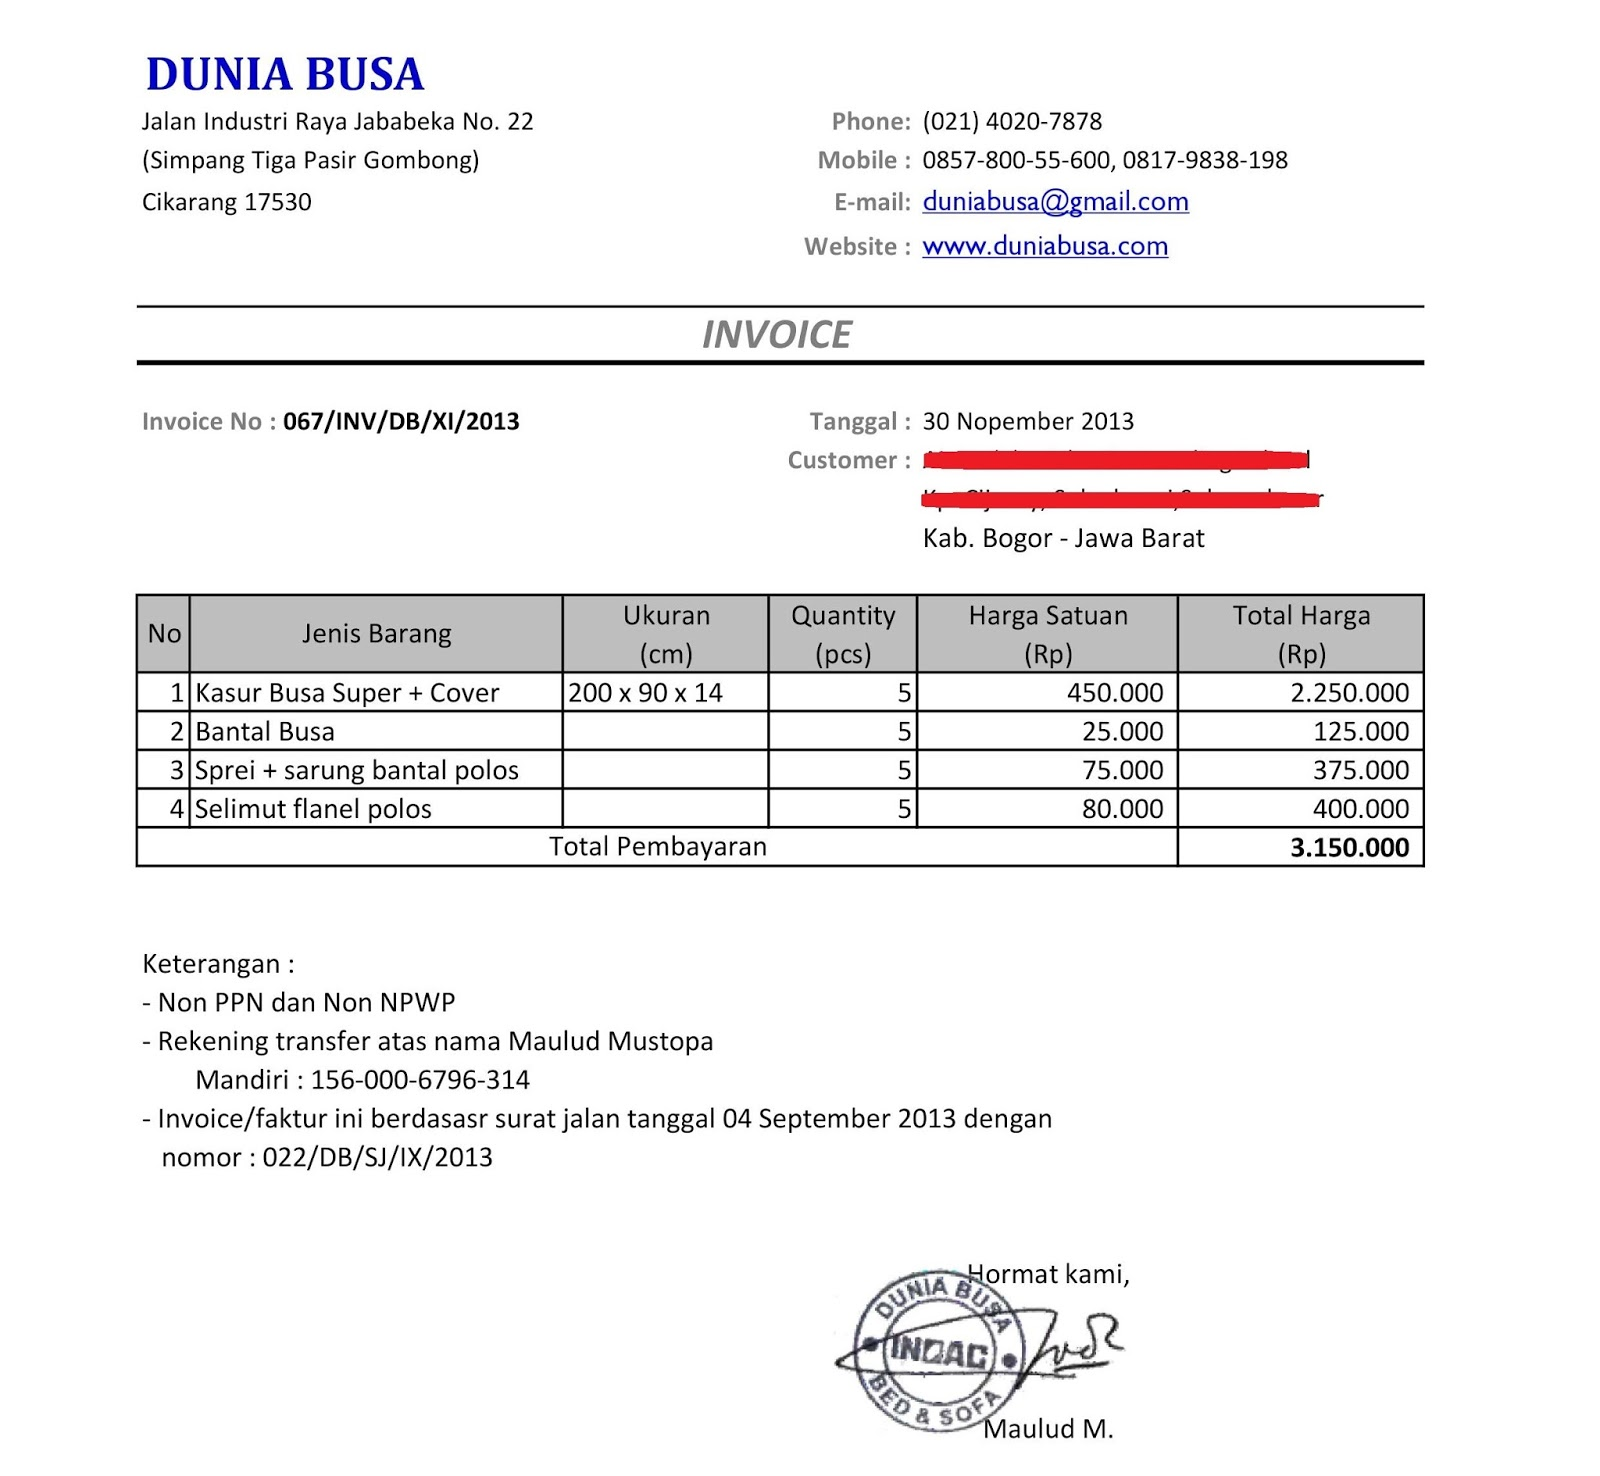 Ultrablogus  Unusual Free Invoice Online  Create Invoice Online  Invoice Template  With Hot Contoh Format Invoice Atau Surat Tagihan  Brankas Arsip  Free Invoice Online With Captivating Carbon Invoice Pads Also Template For Invoice Uk In Addition Simple Invoice Software Free Download And Payment Due On Receipt Of Invoice As Well As  Mazda  Invoice Additionally Manage Invoices From Sklepco With Ultrablogus  Hot Free Invoice Online  Create Invoice Online  Invoice Template  With Captivating Contoh Format Invoice Atau Surat Tagihan  Brankas Arsip  Free Invoice Online And Unusual Carbon Invoice Pads Also Template For Invoice Uk In Addition Simple Invoice Software Free Download From Sklepco